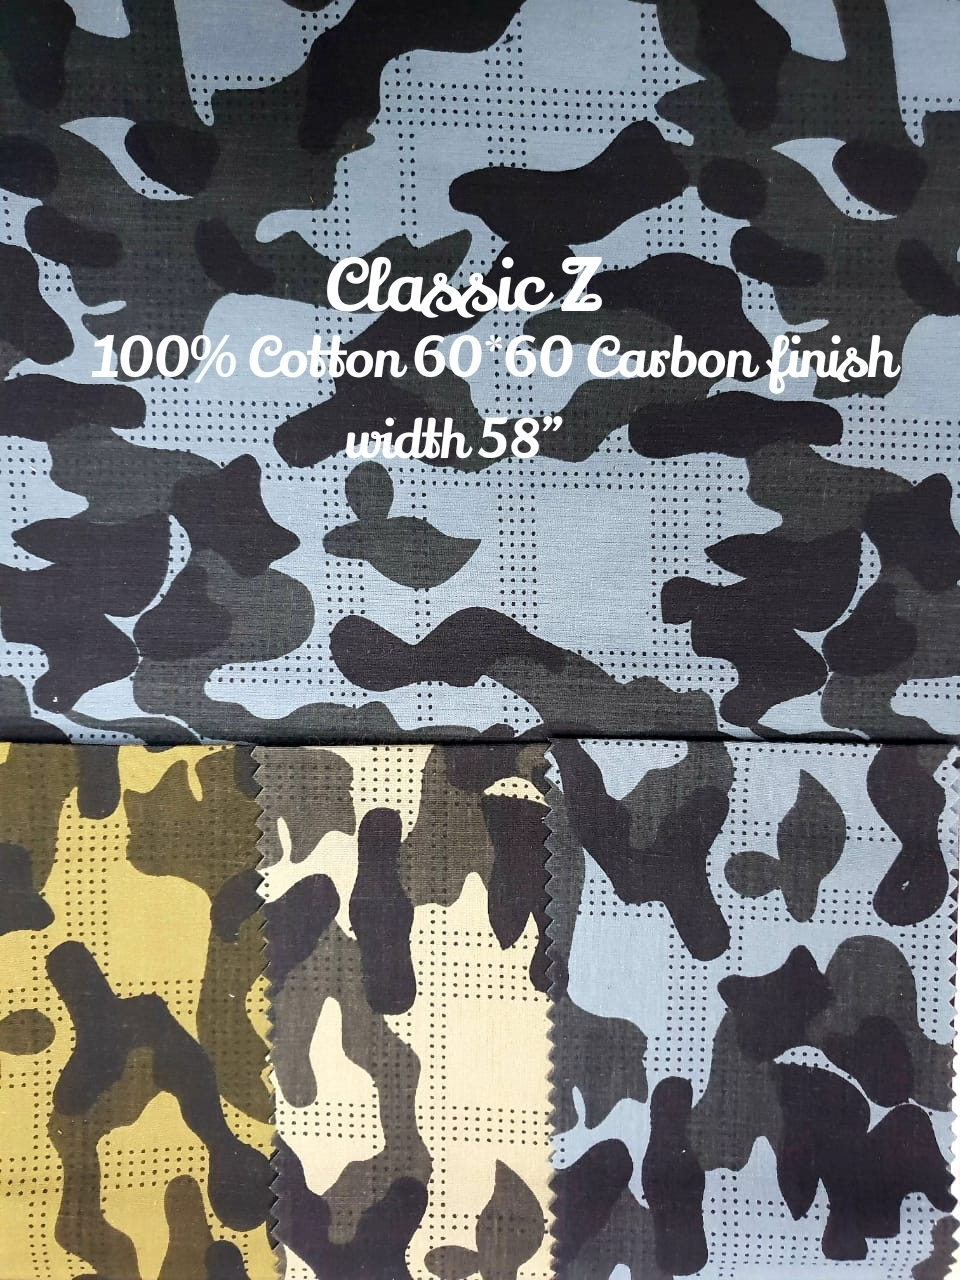 Classic-Z 100% cotton 60*60 carbon finish